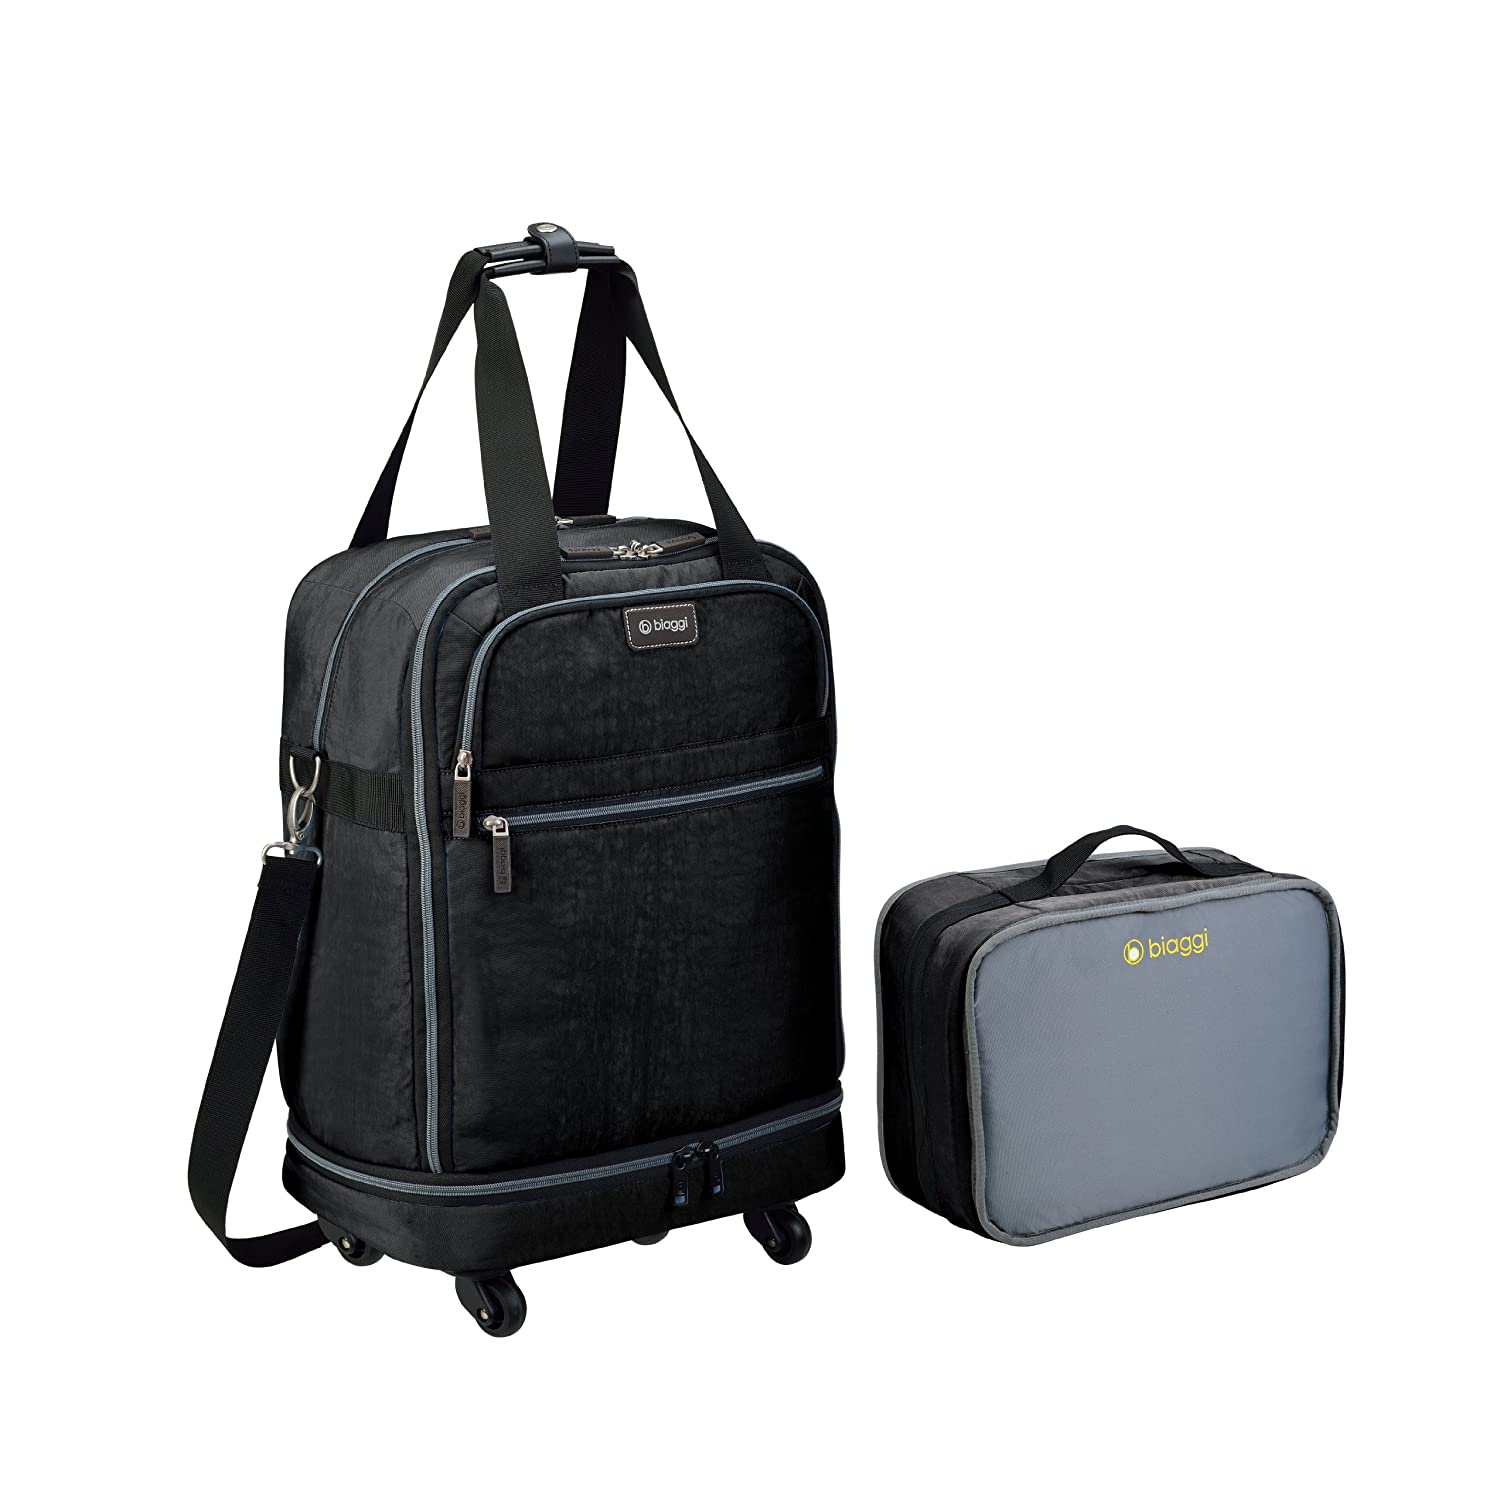 Amazon.com: Biaggi Luggage Zipsak 22